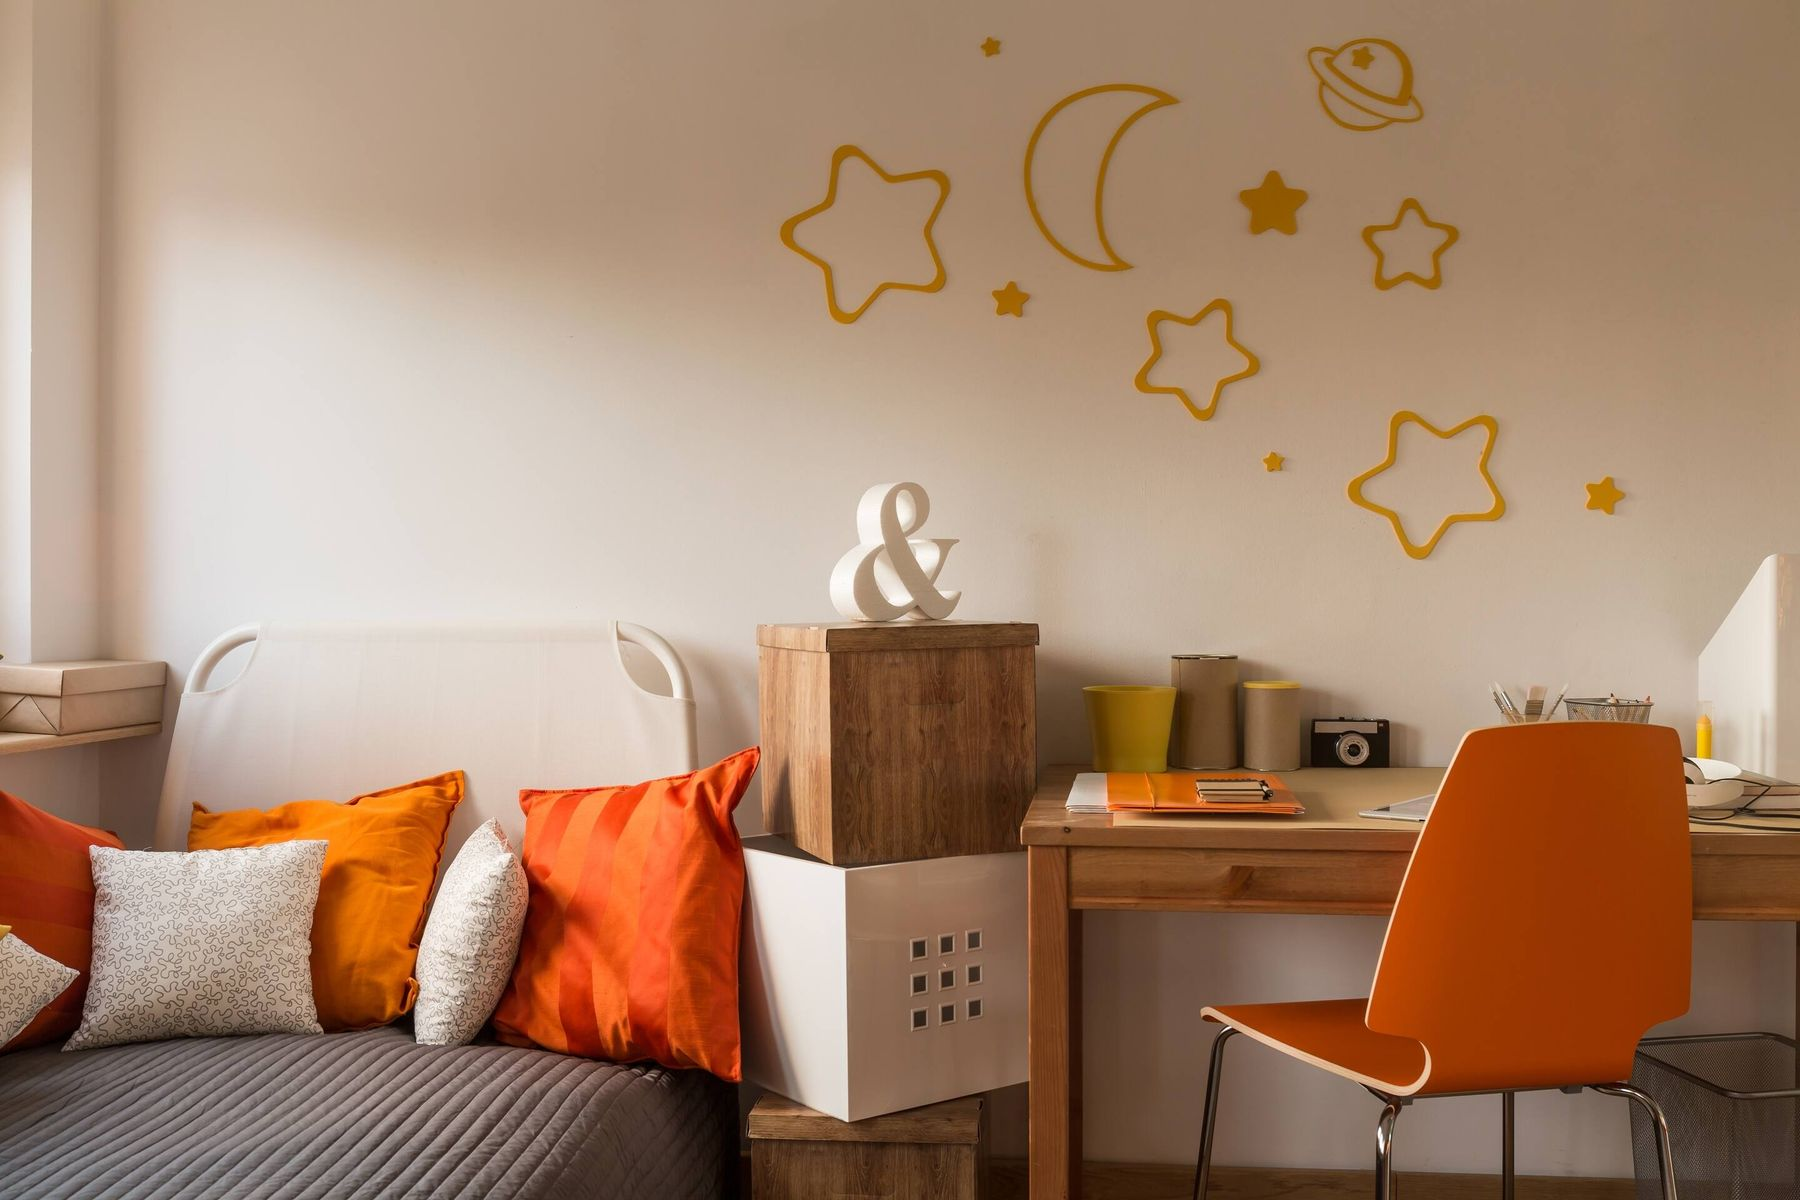 Did Your Child Scribble on your Walls, Tables and Sofa with a Permanent Marker? Let's Clean It